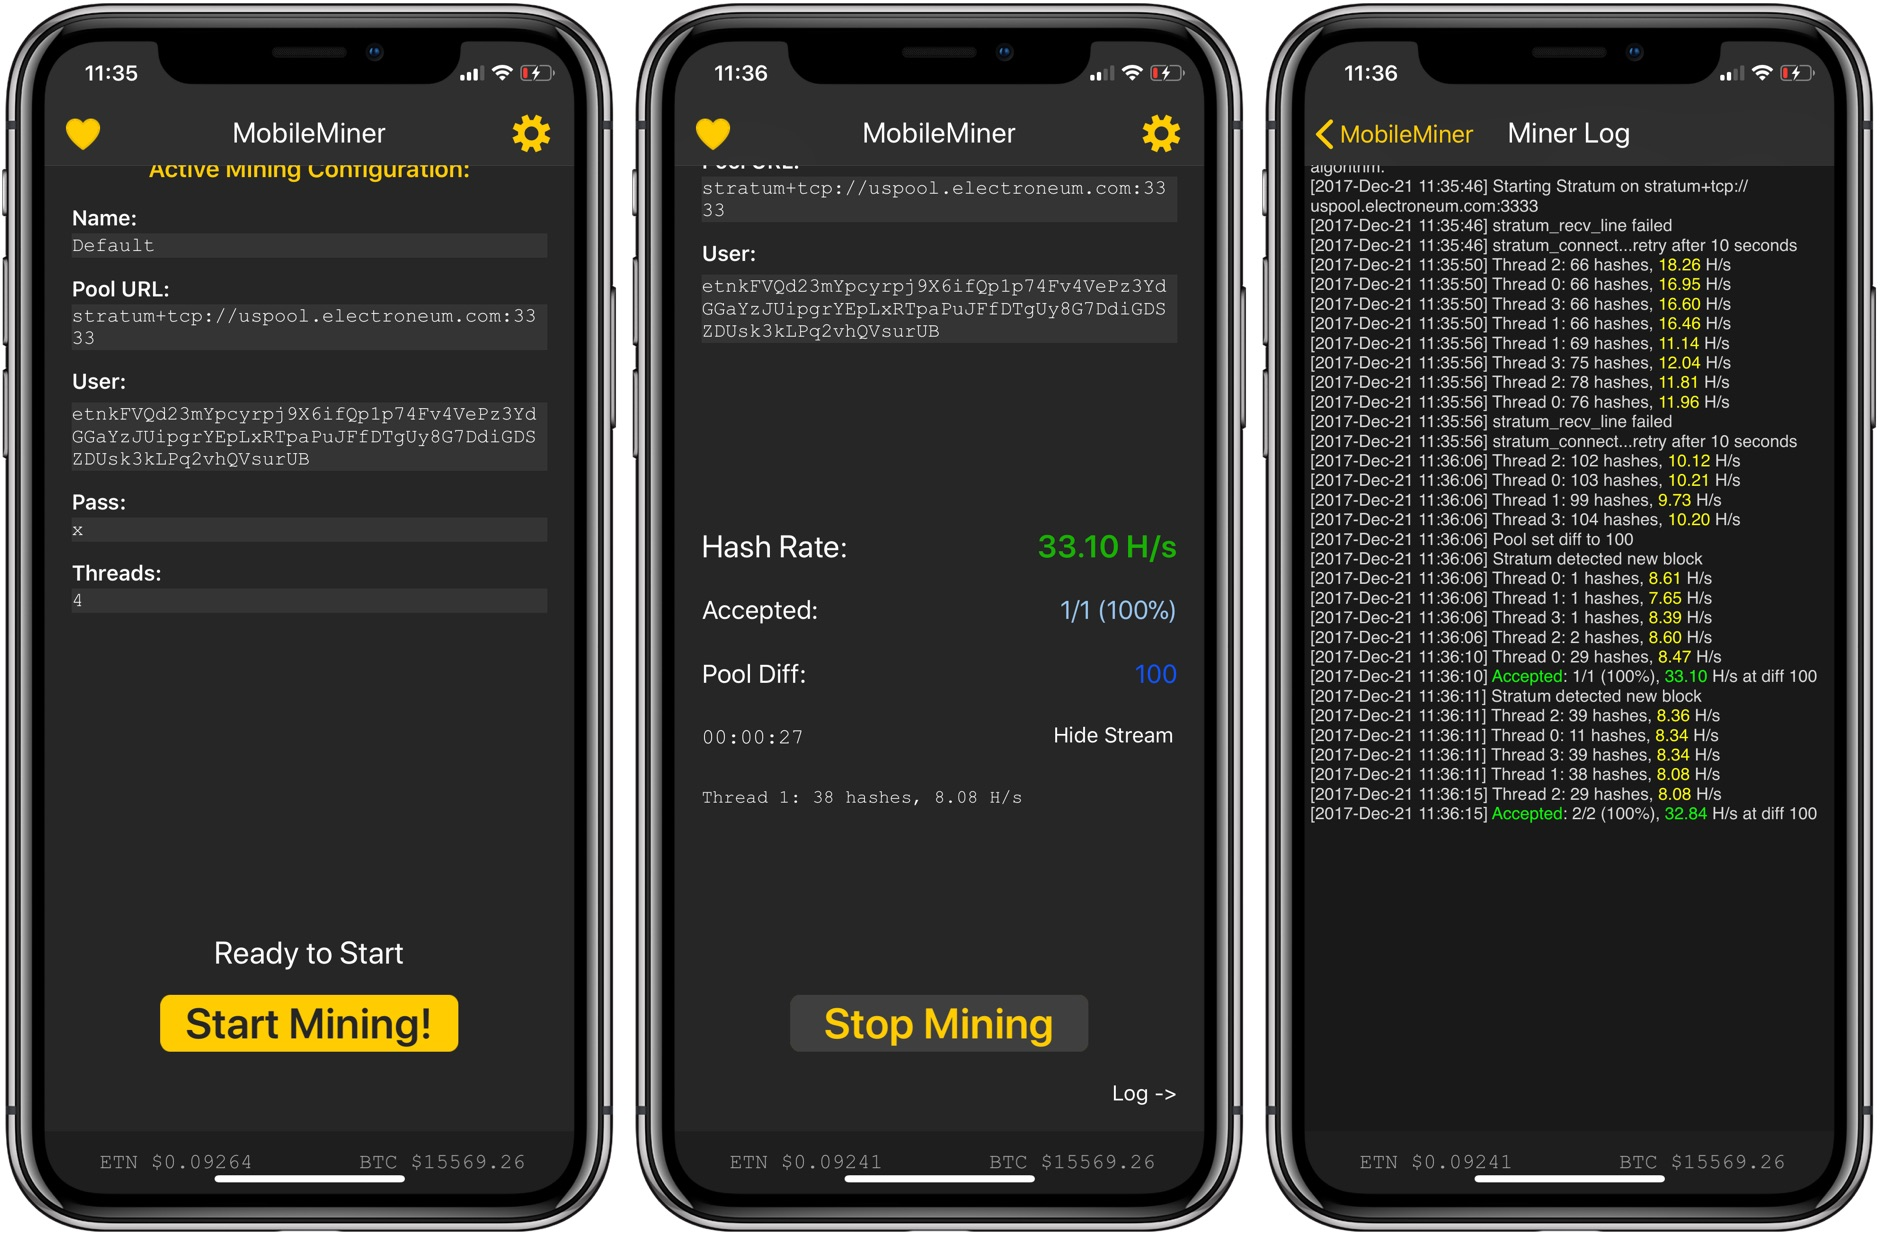 Hands-on: MobileMiner - how to mine cryptocurrency on an